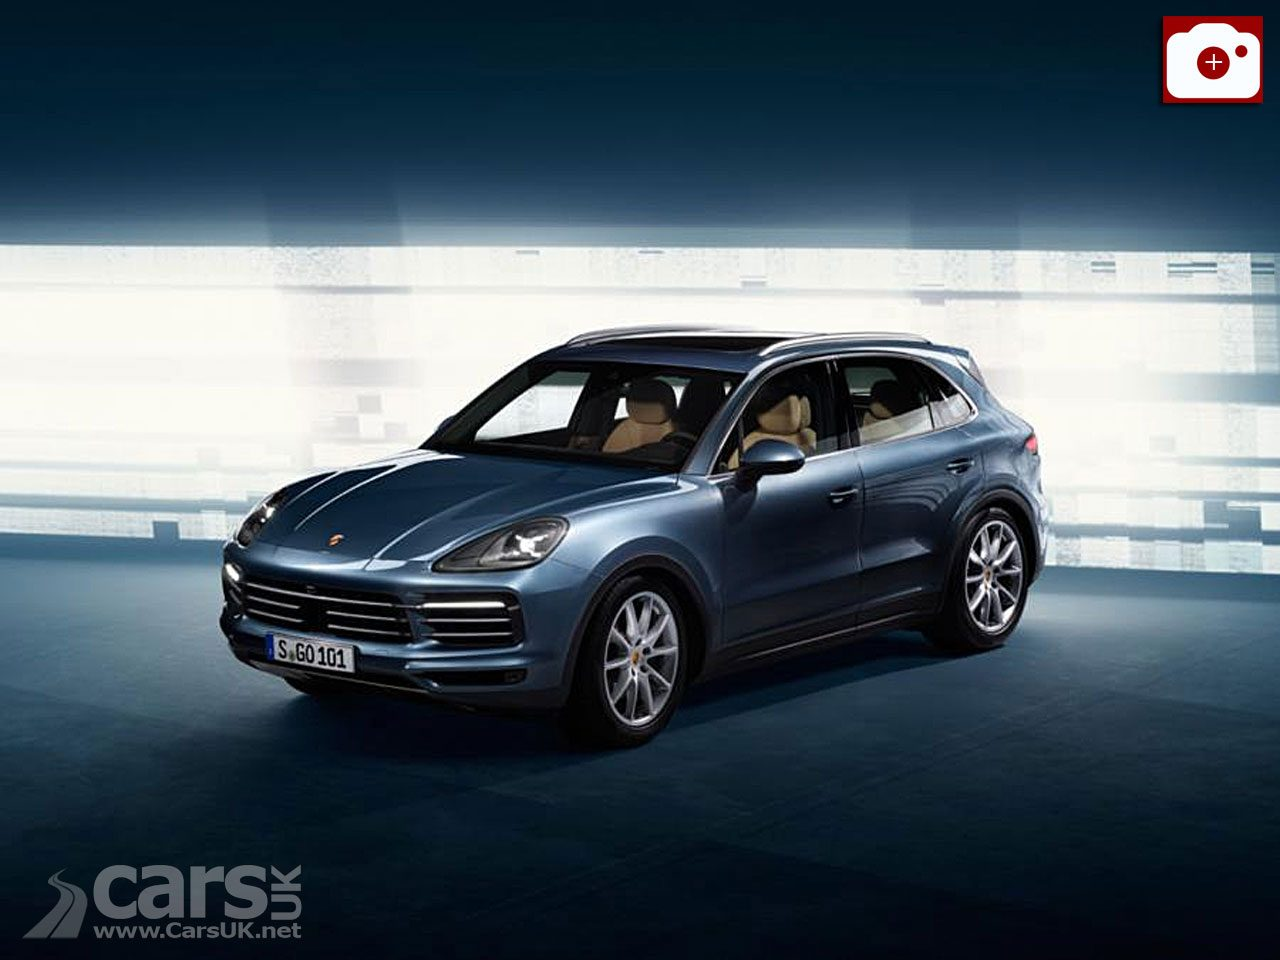 New Porsche Cayenne: Porsche's 2018 Cayenne is OFFICIALLY official